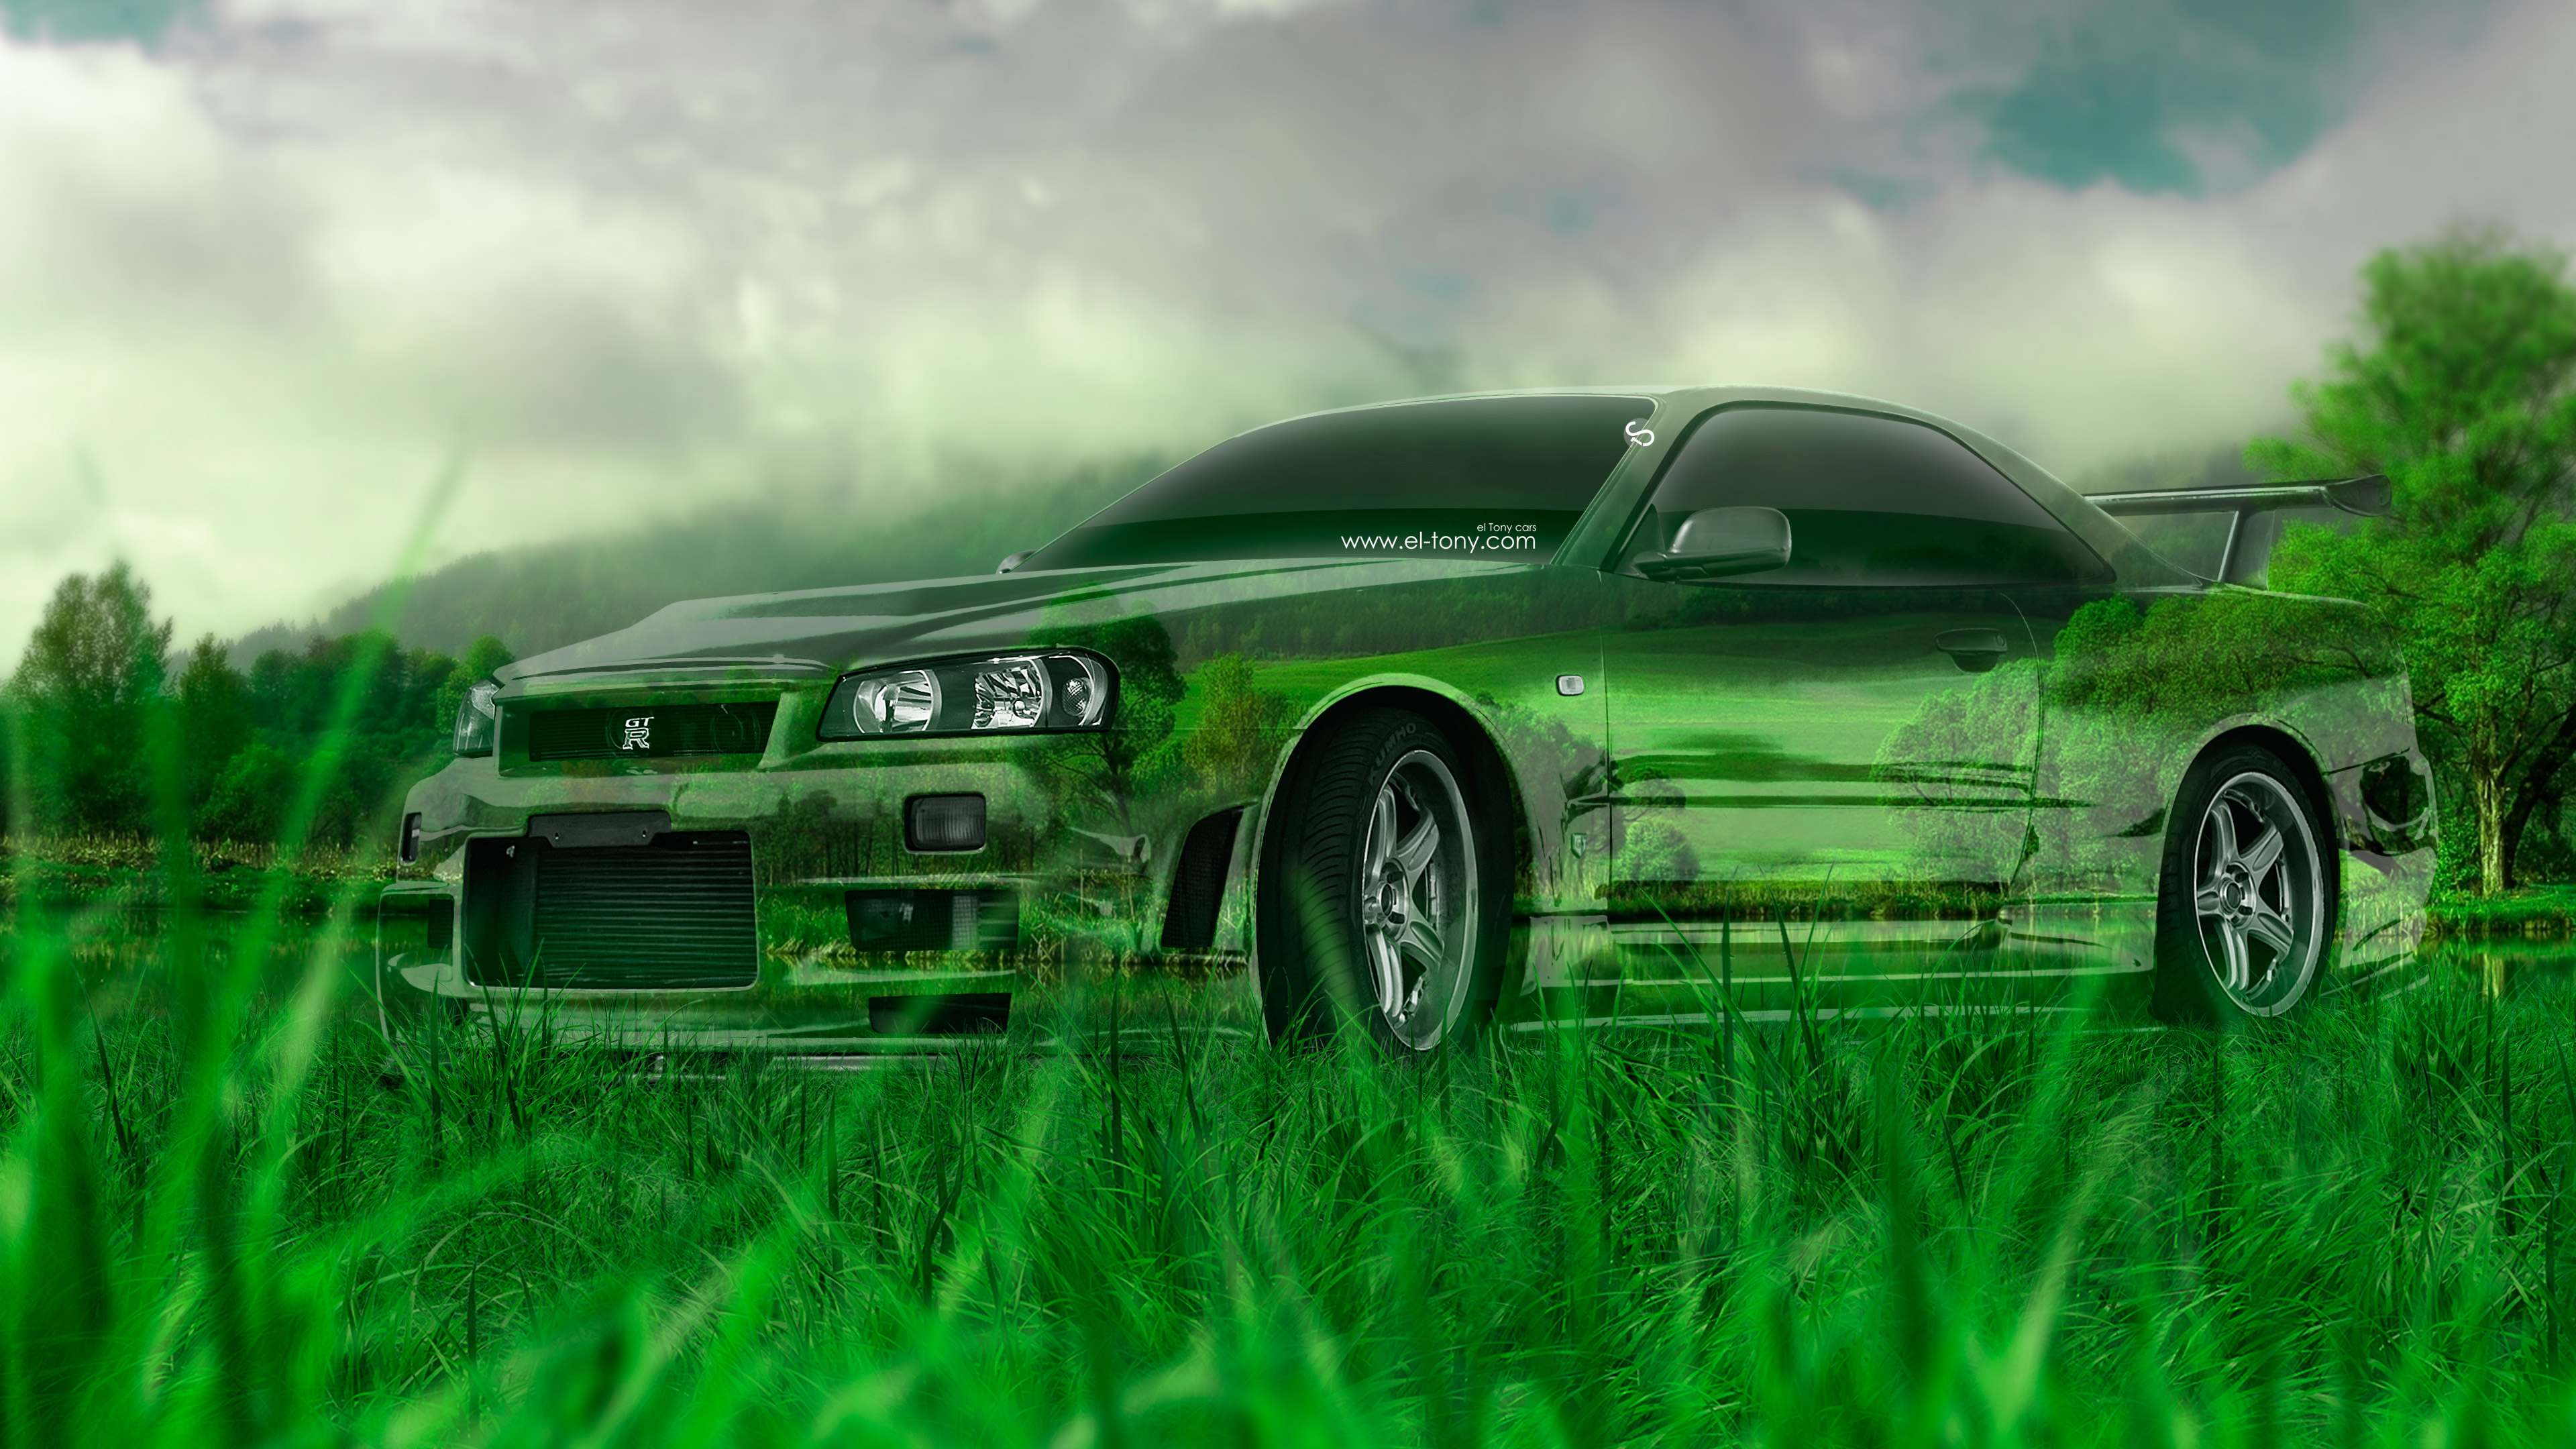 4k Nissan Skyline Gtr R34 Jdm Crystal Nature Car 2015 El Tony